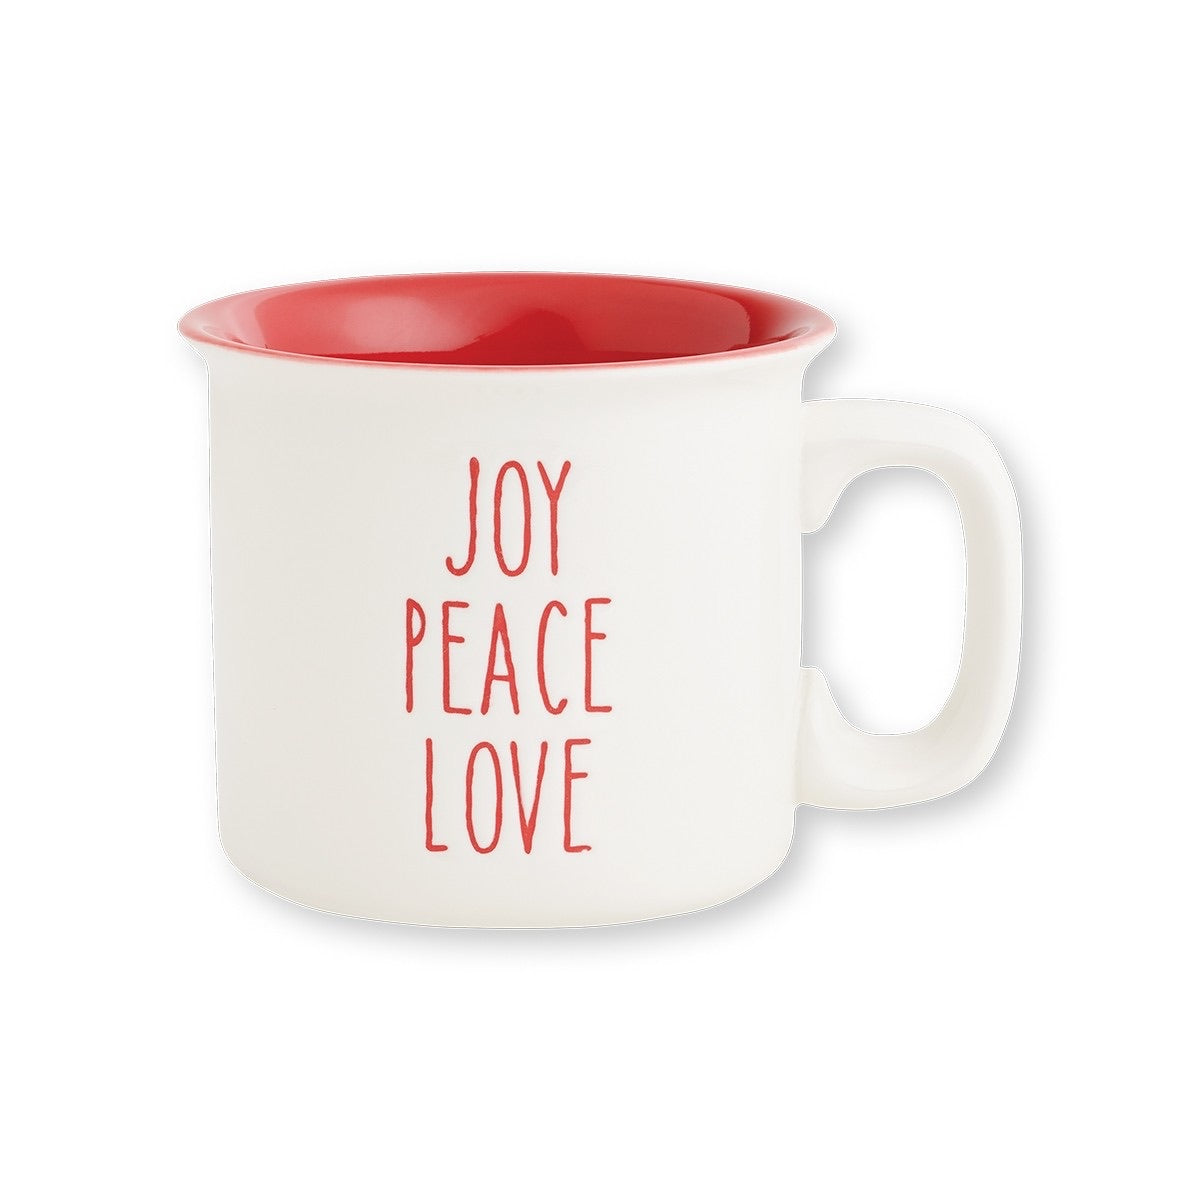 Joy Peace Love Engraved Christmas Camp Mug, 15oz. White and Red